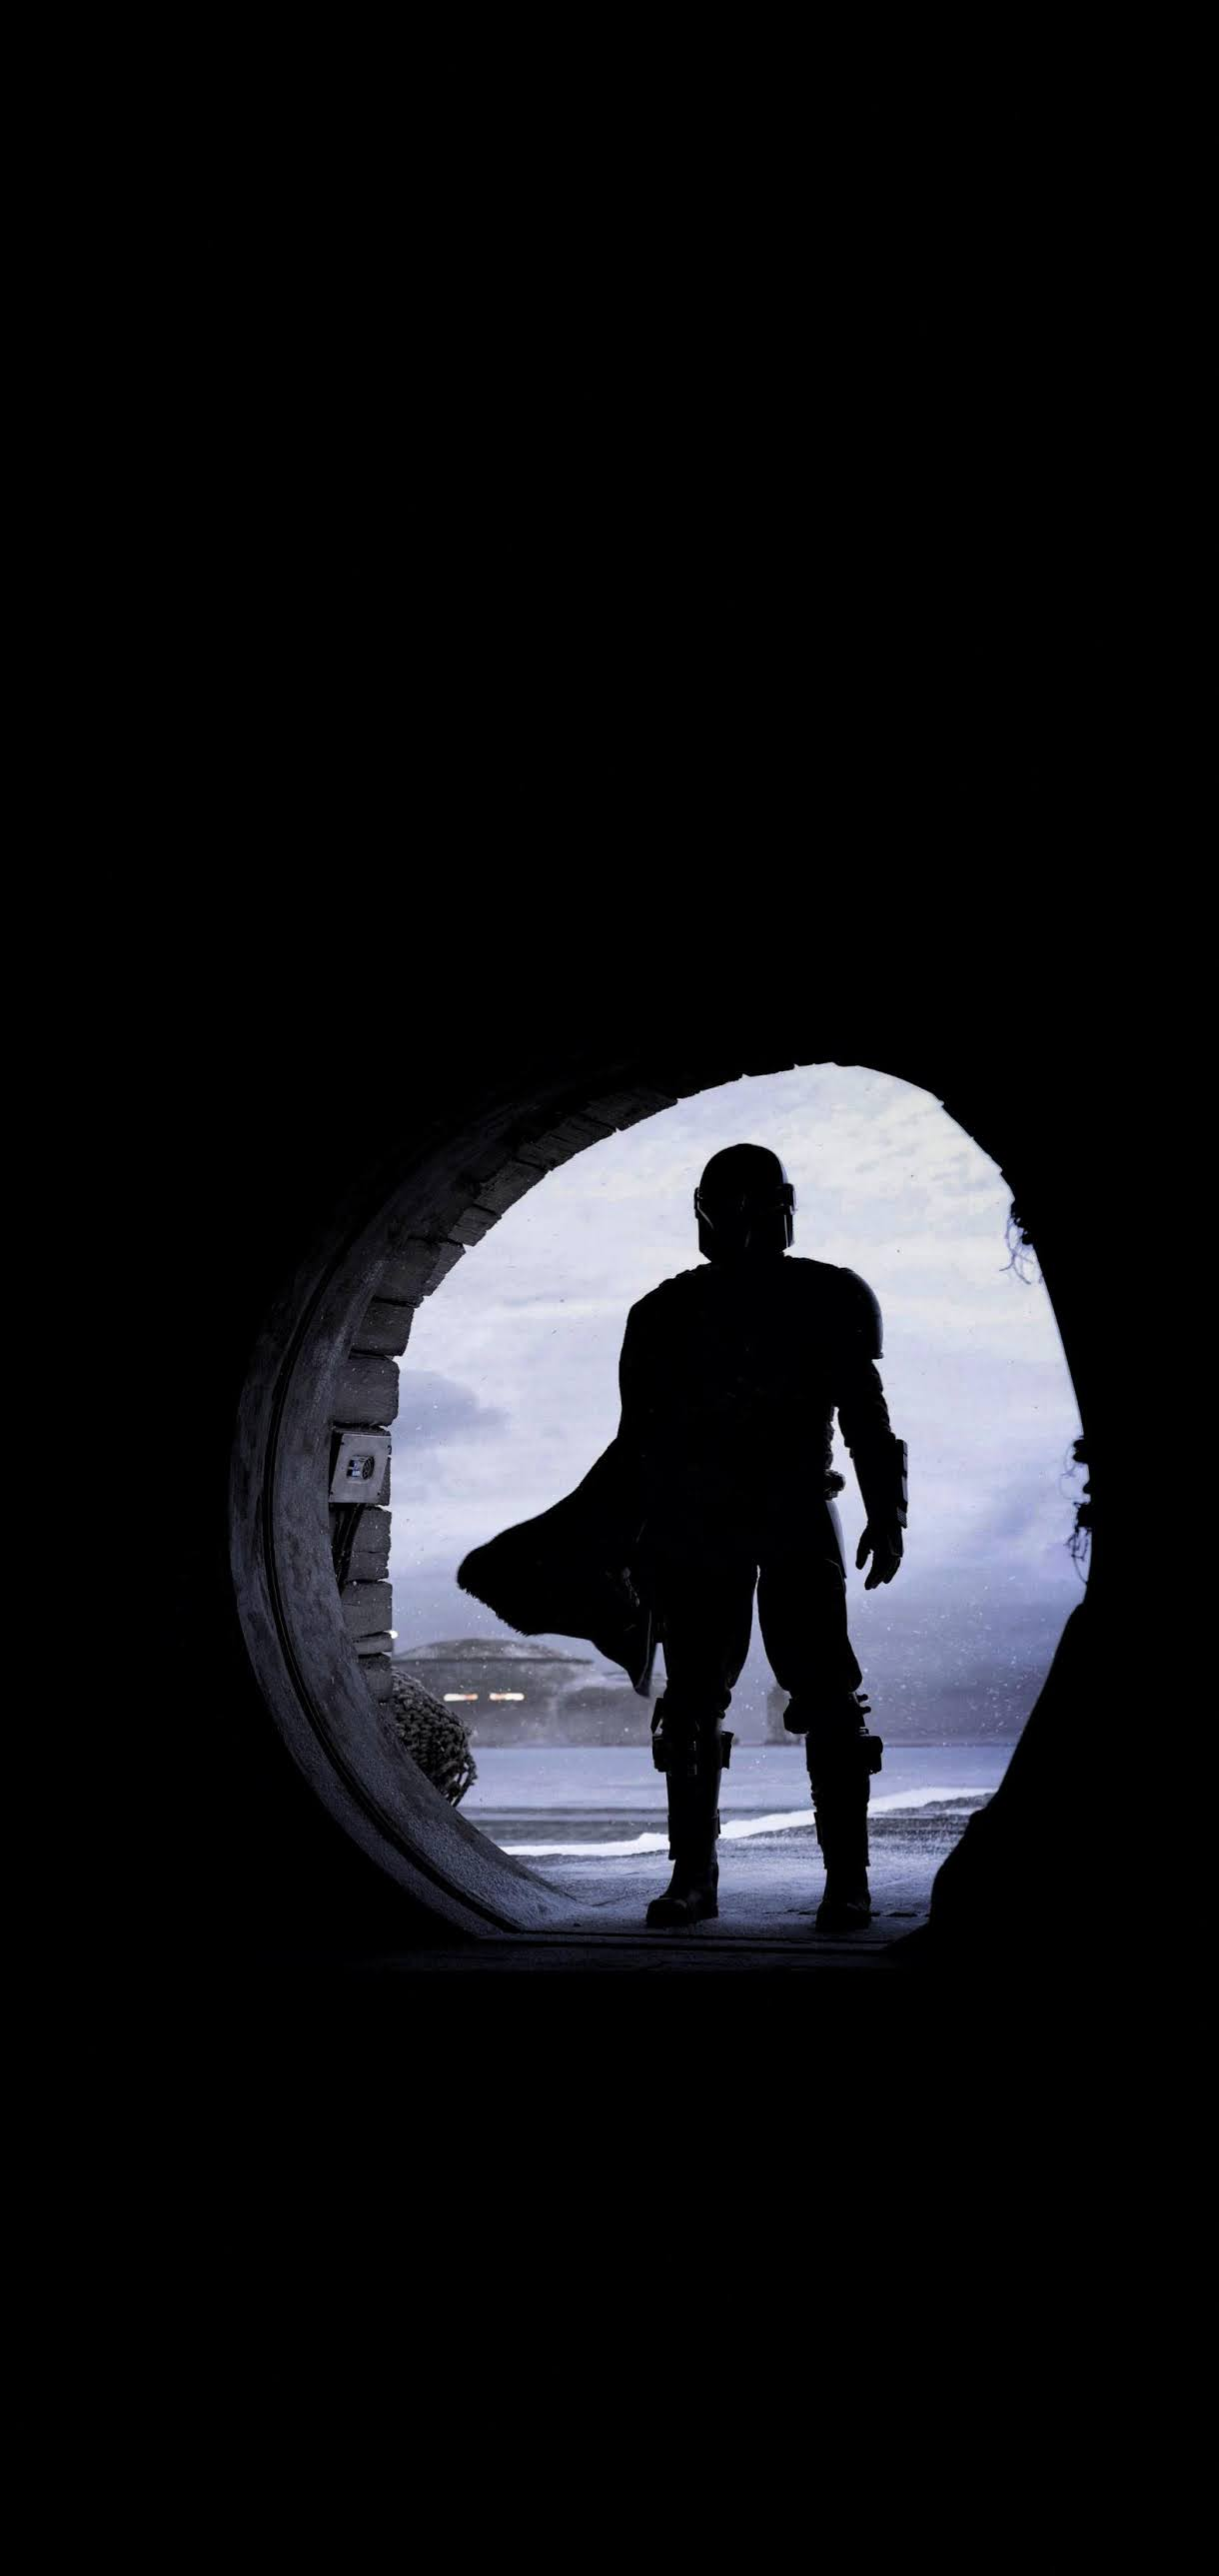 mandalorian in a door silhouette wallpaper